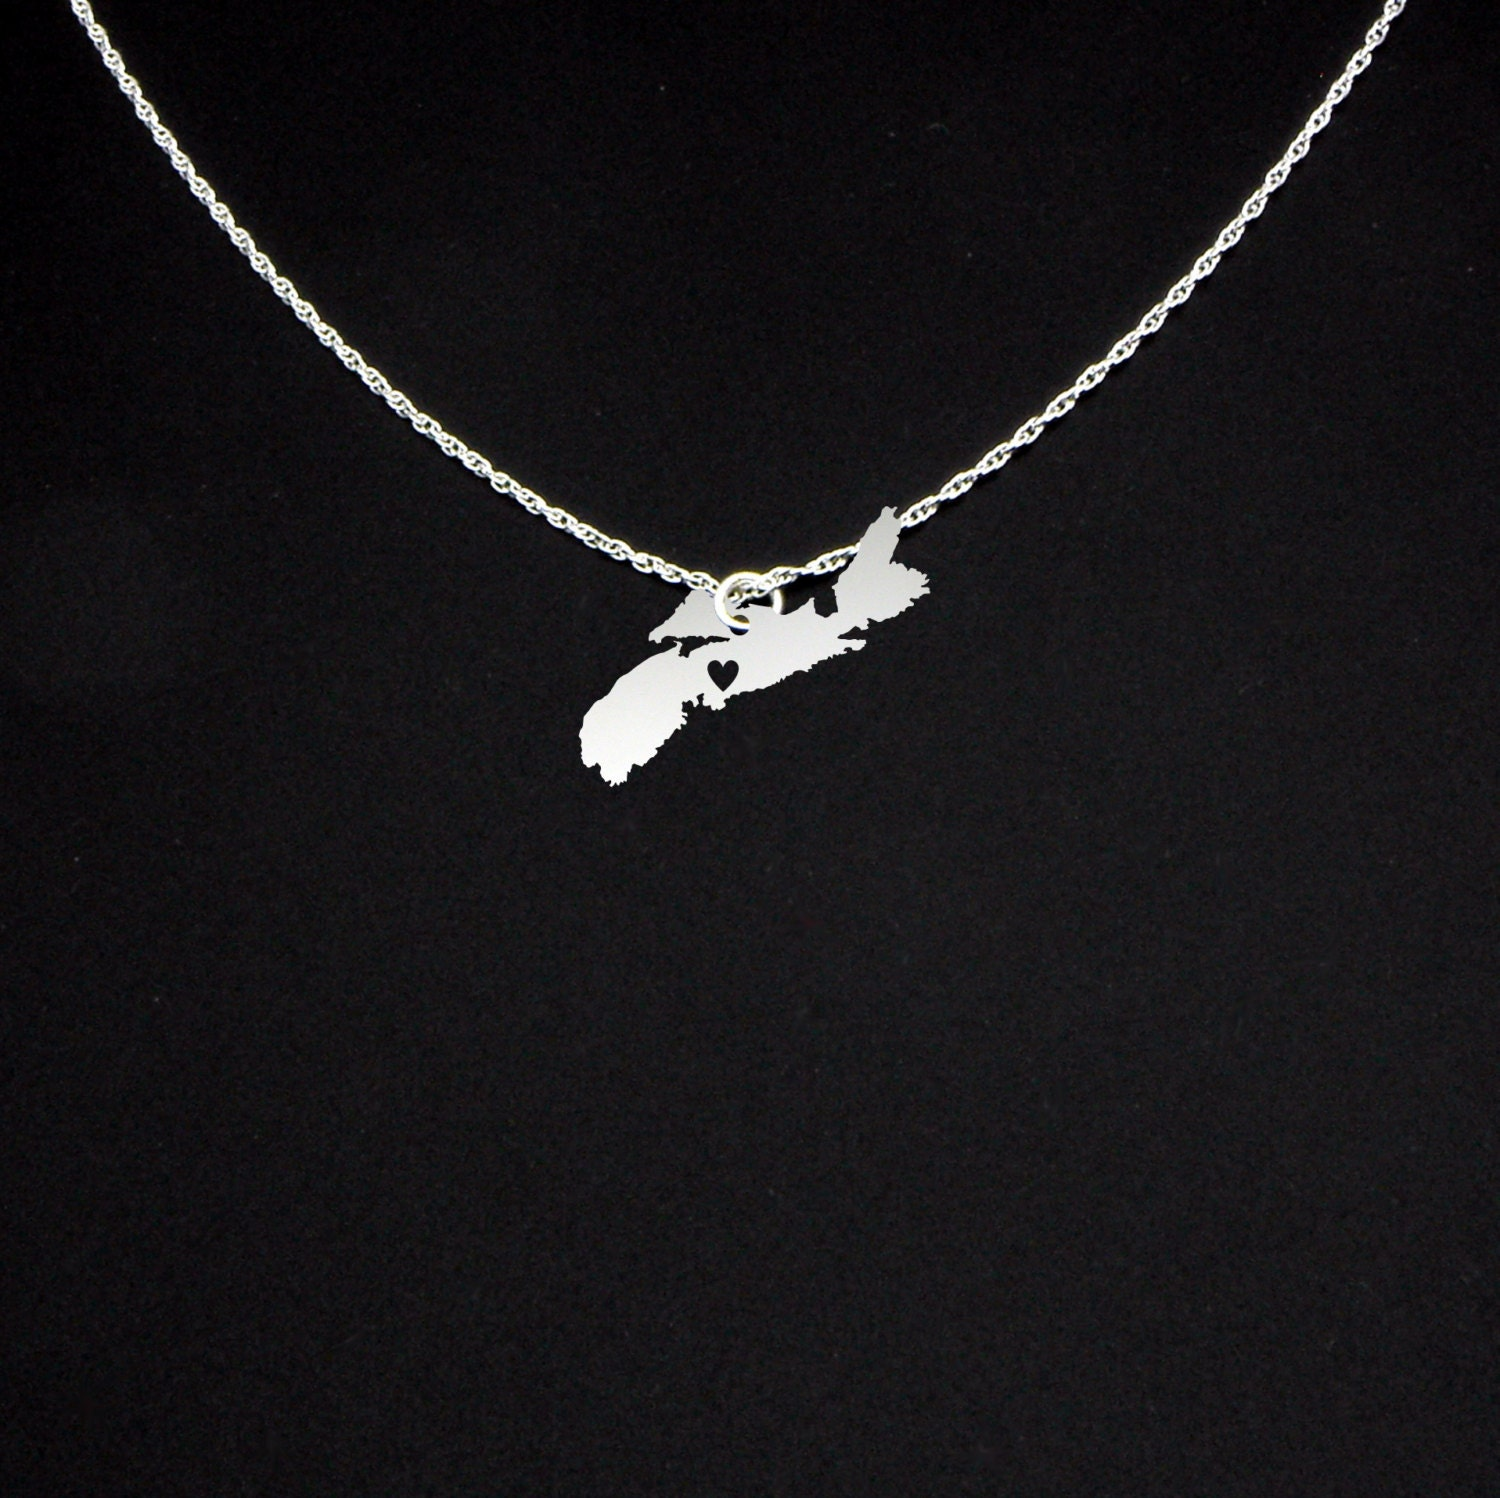 nova scotia necklace nova scotia jewelry nova scotia gift